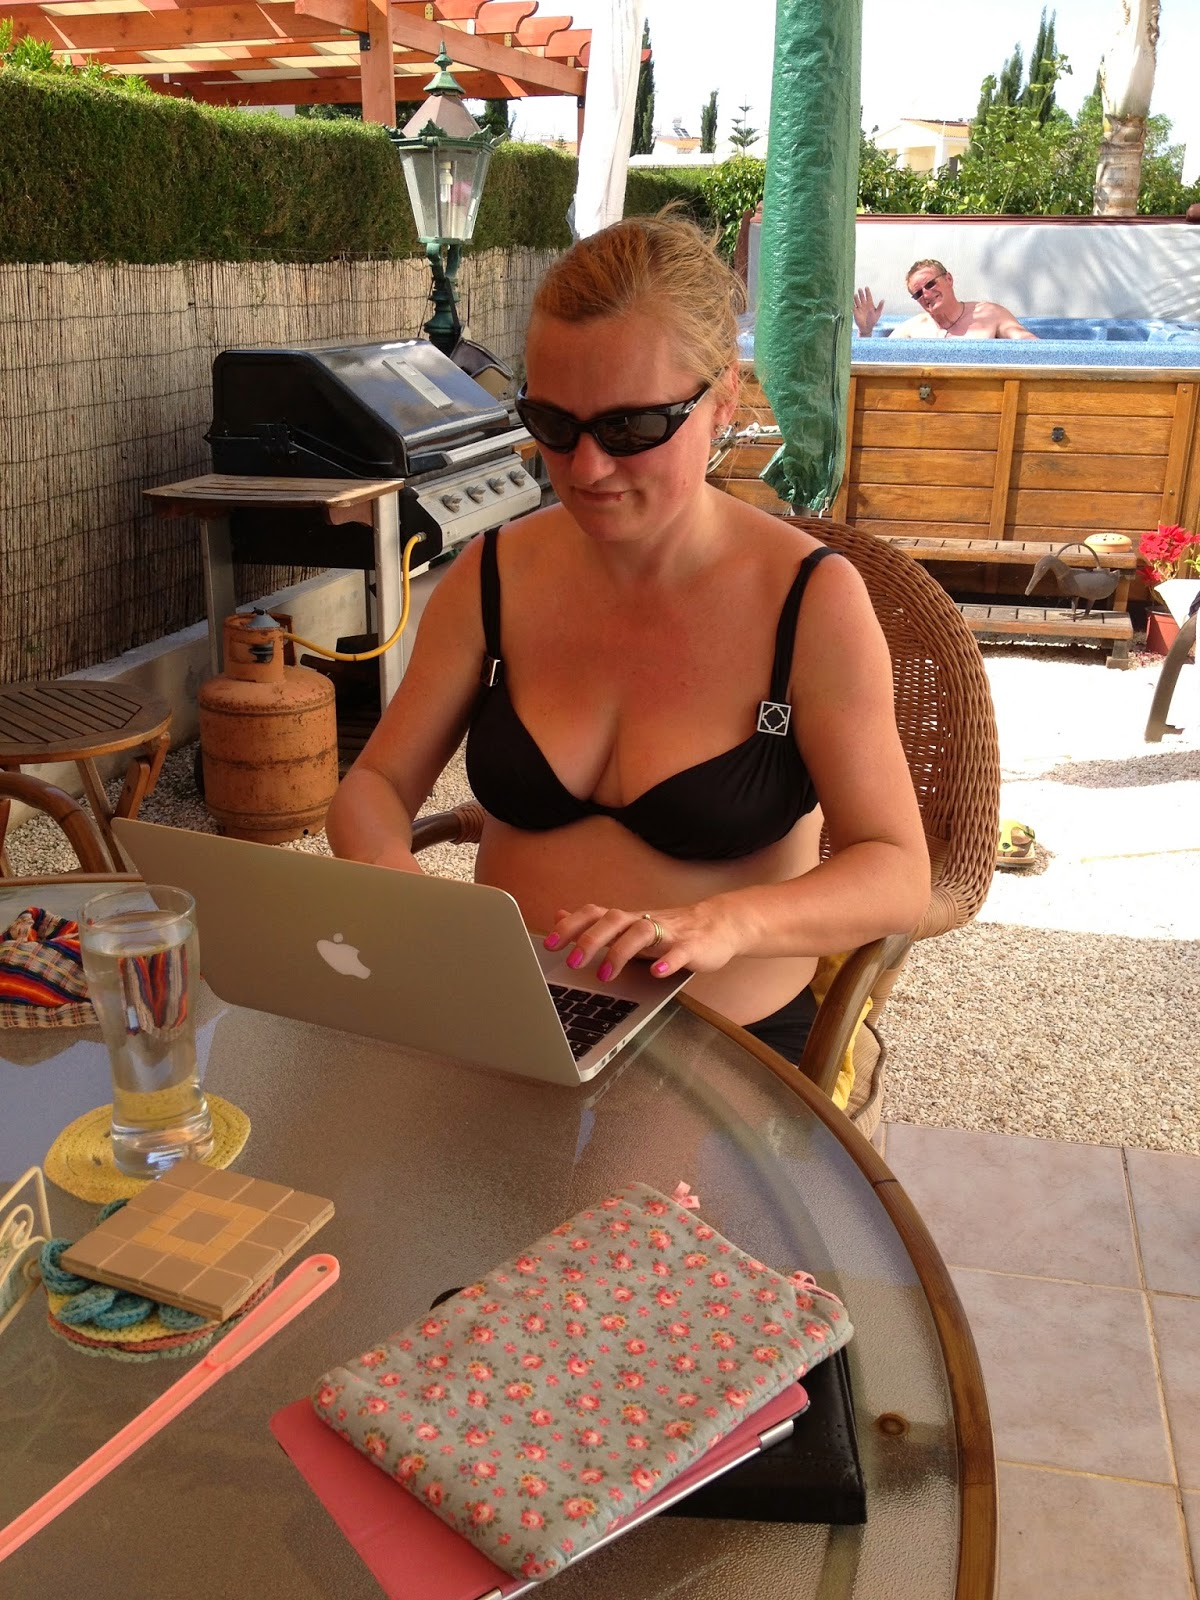 madmumof7 in bikini blogging in Cyprus